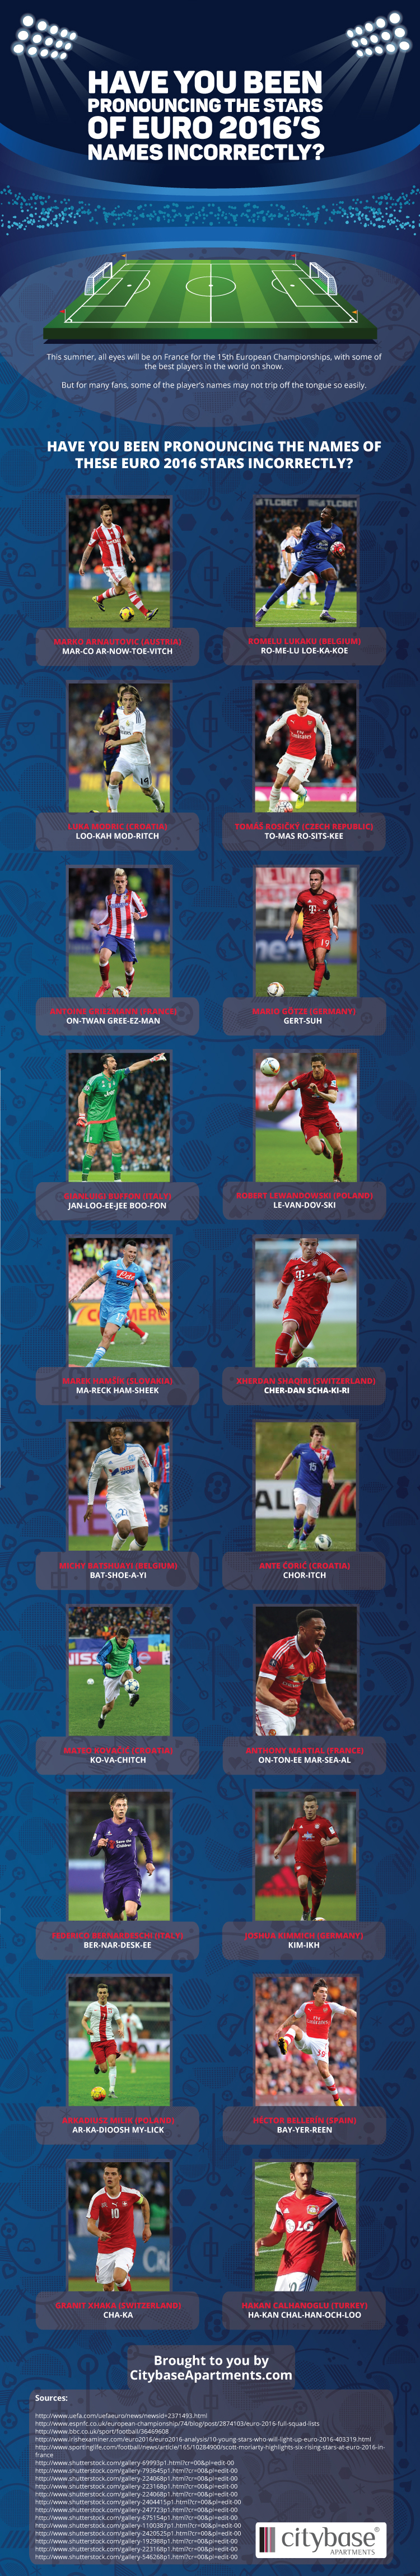 Wrongly Pronounced Euro 2016 Players